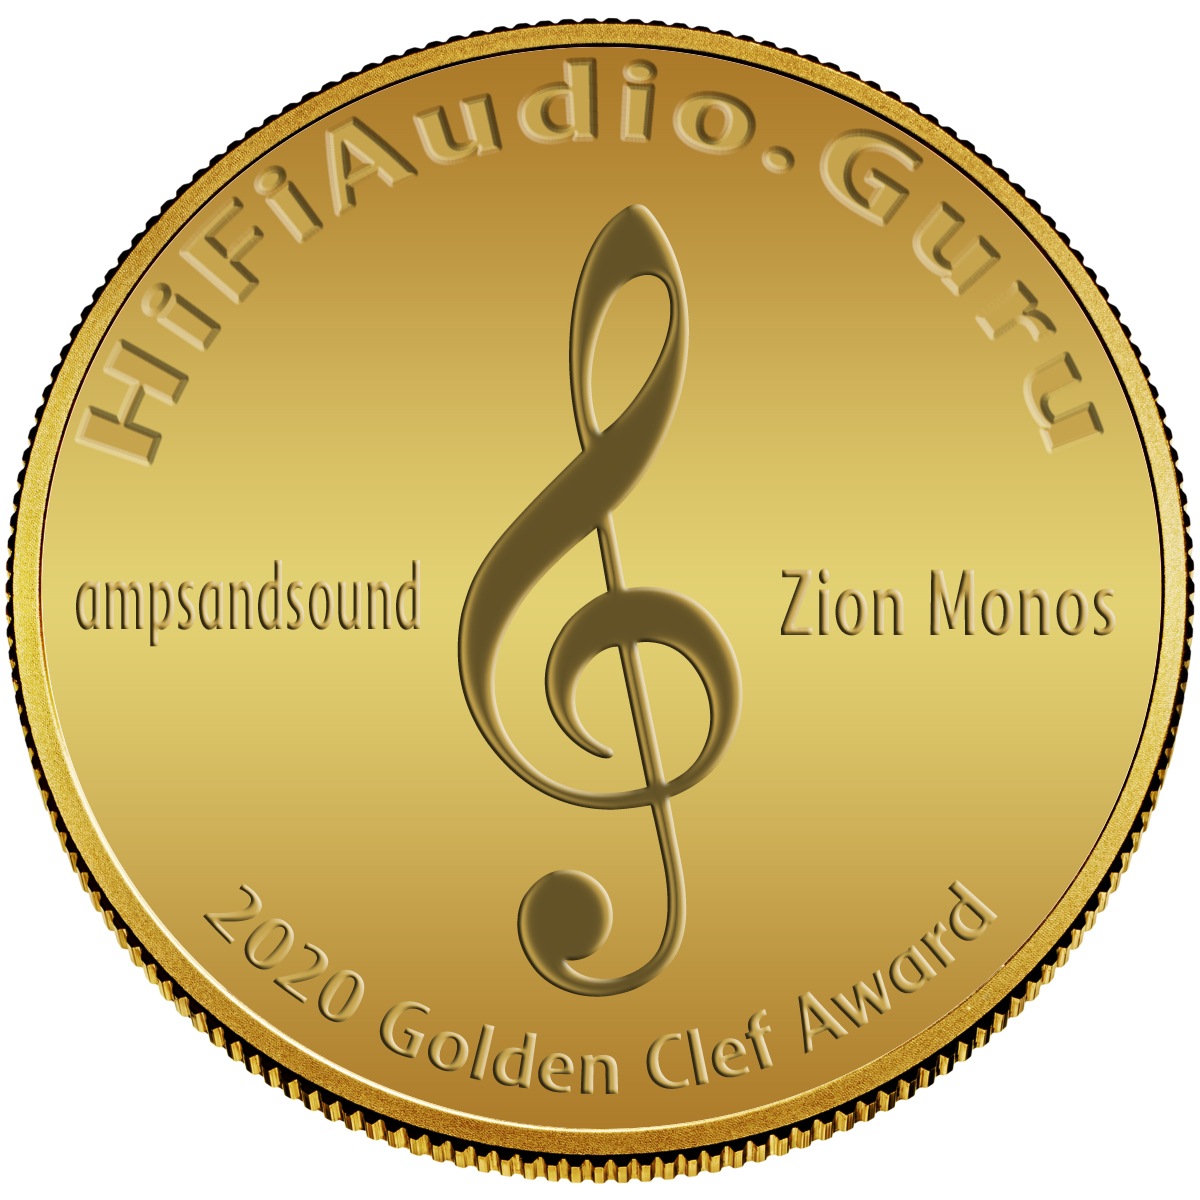 ampsandsound Zion Monos Editor's Choice Product of the Year